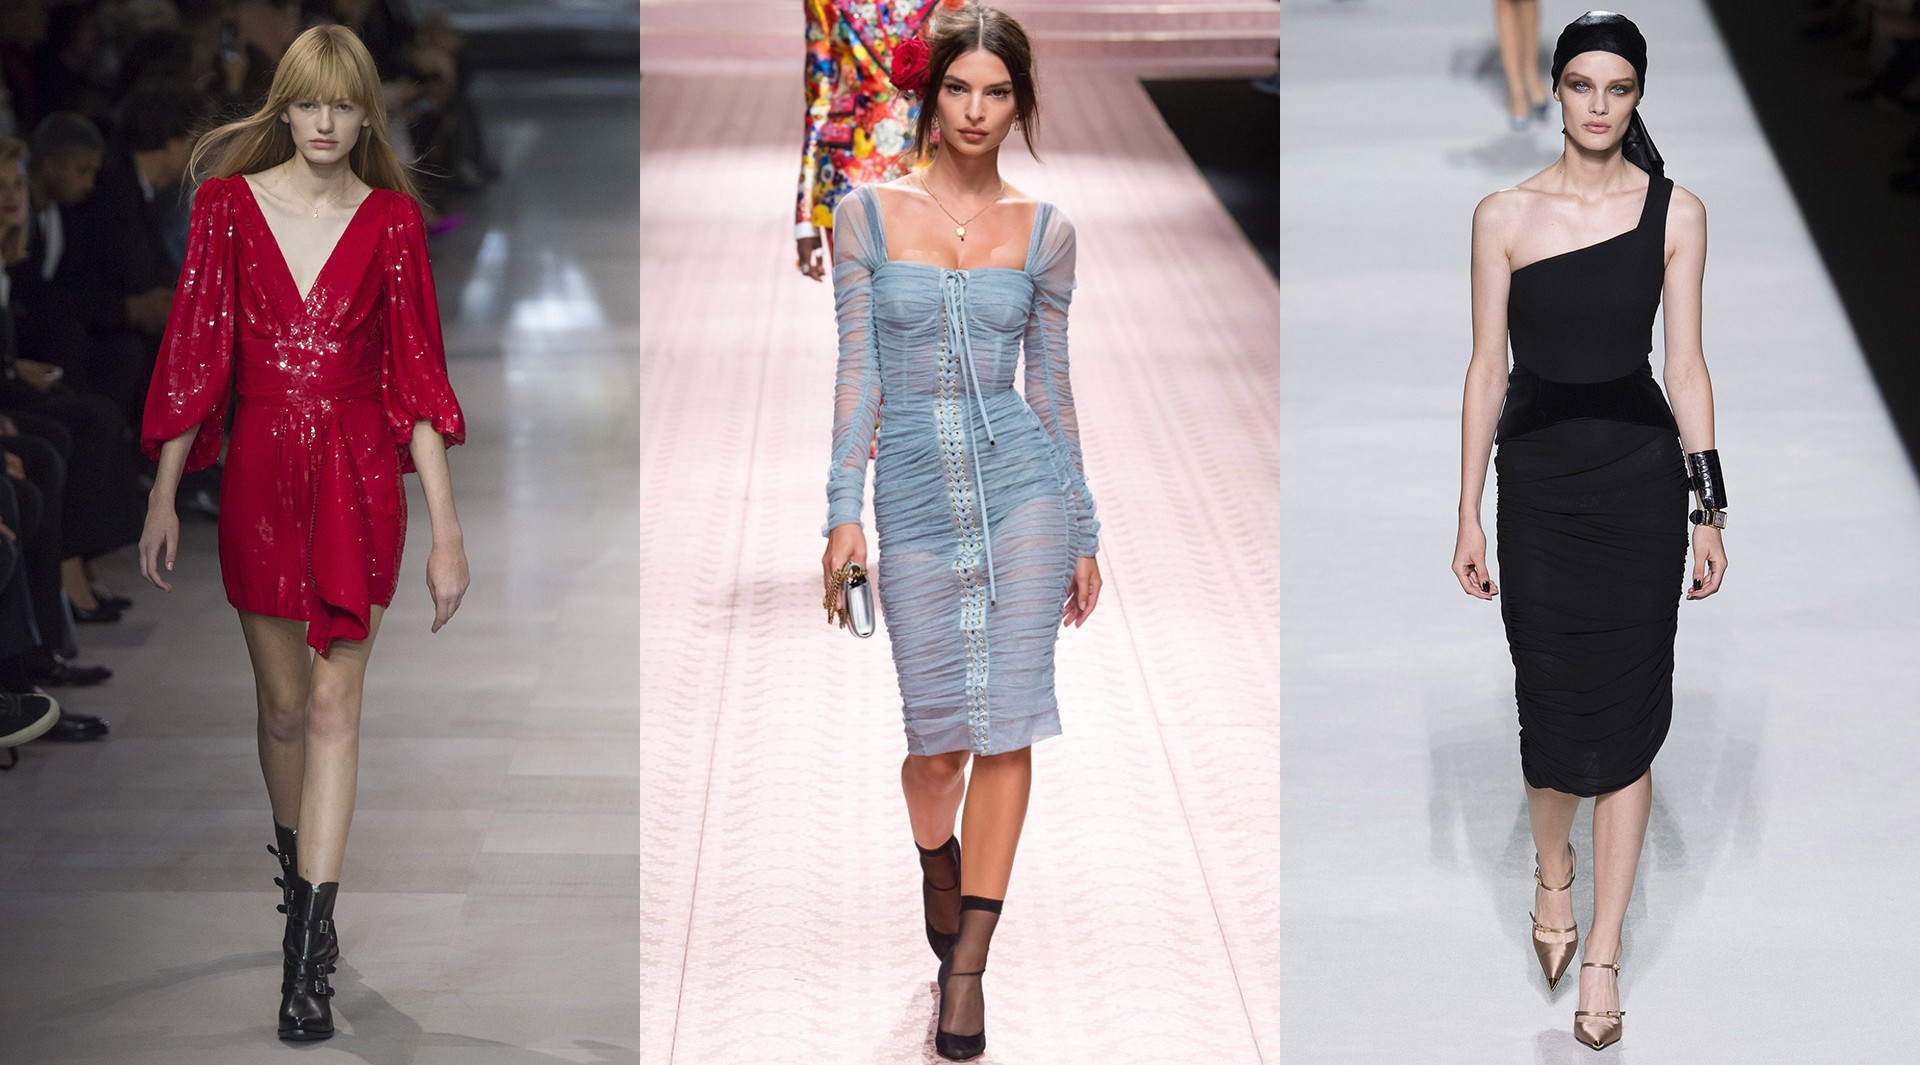 Spring Trend Alert: Cocktail Dresses